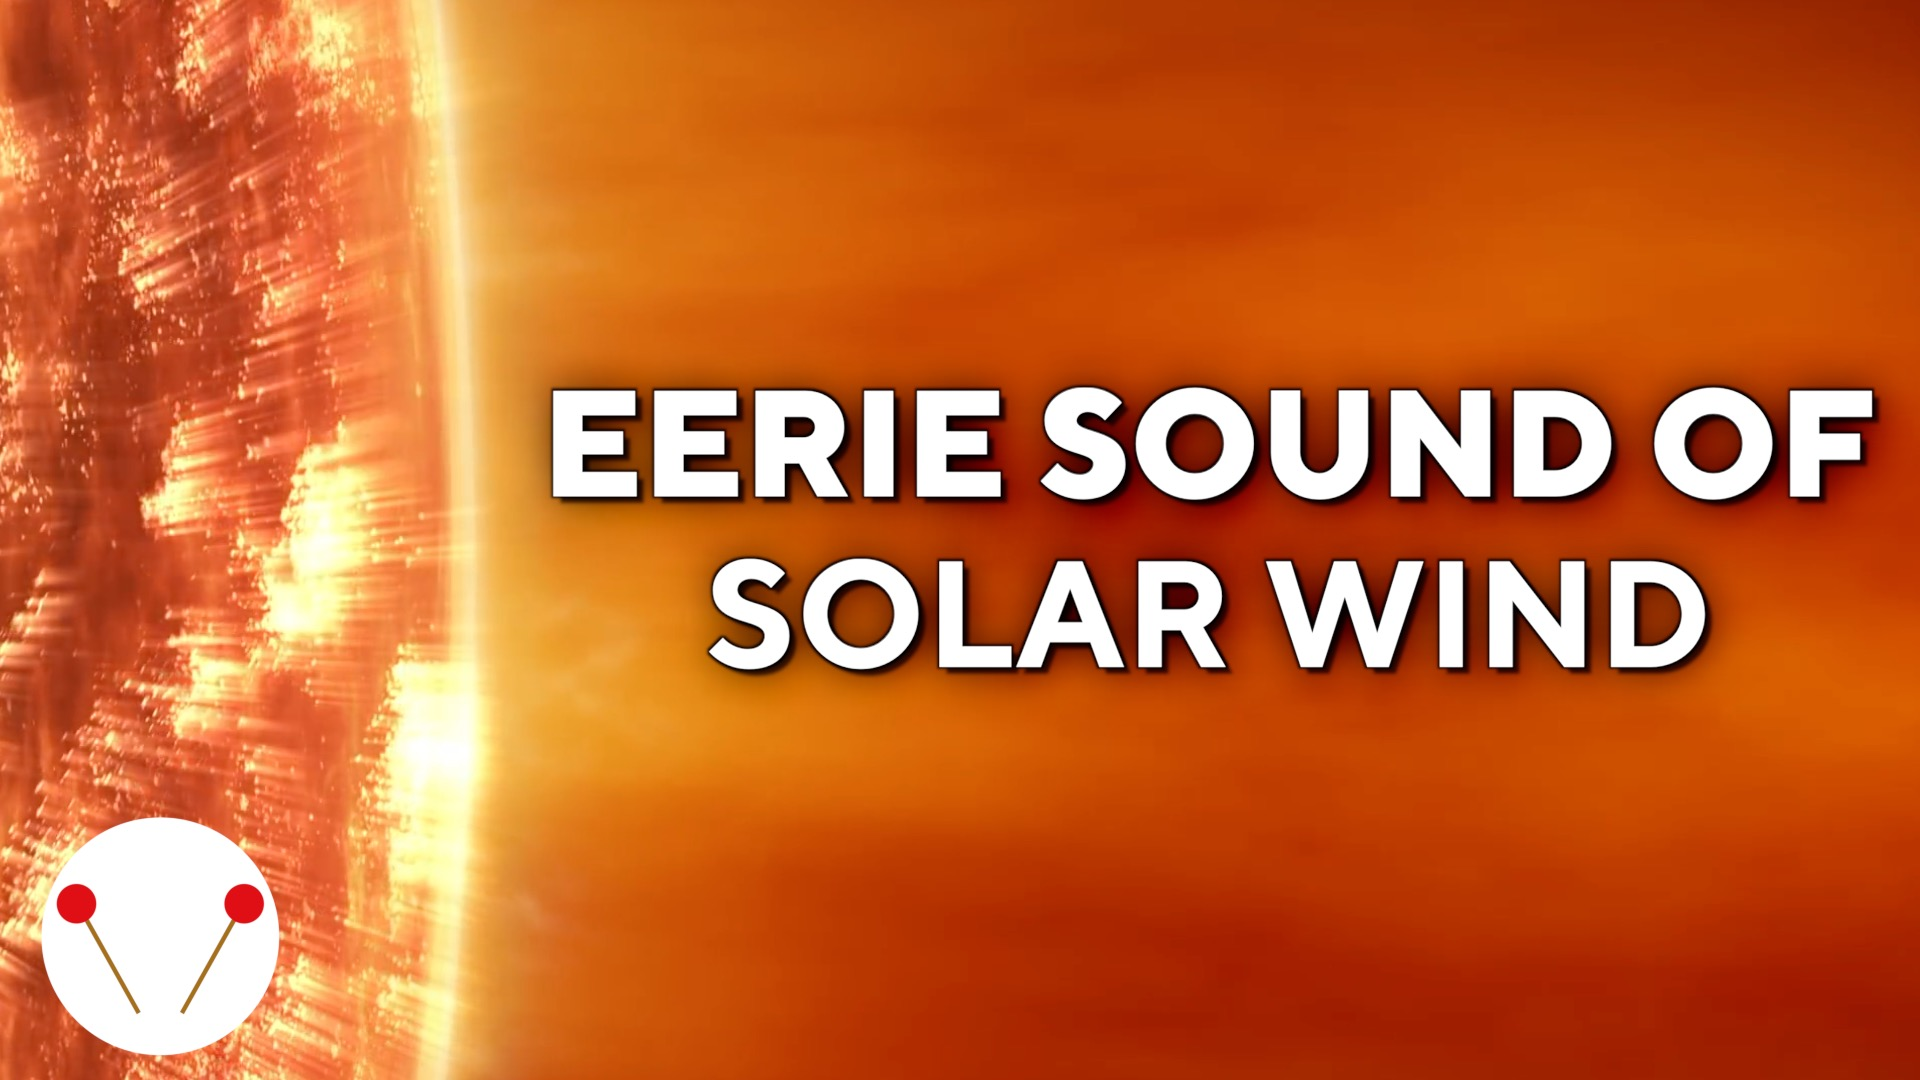 The eerie sound of solar wind